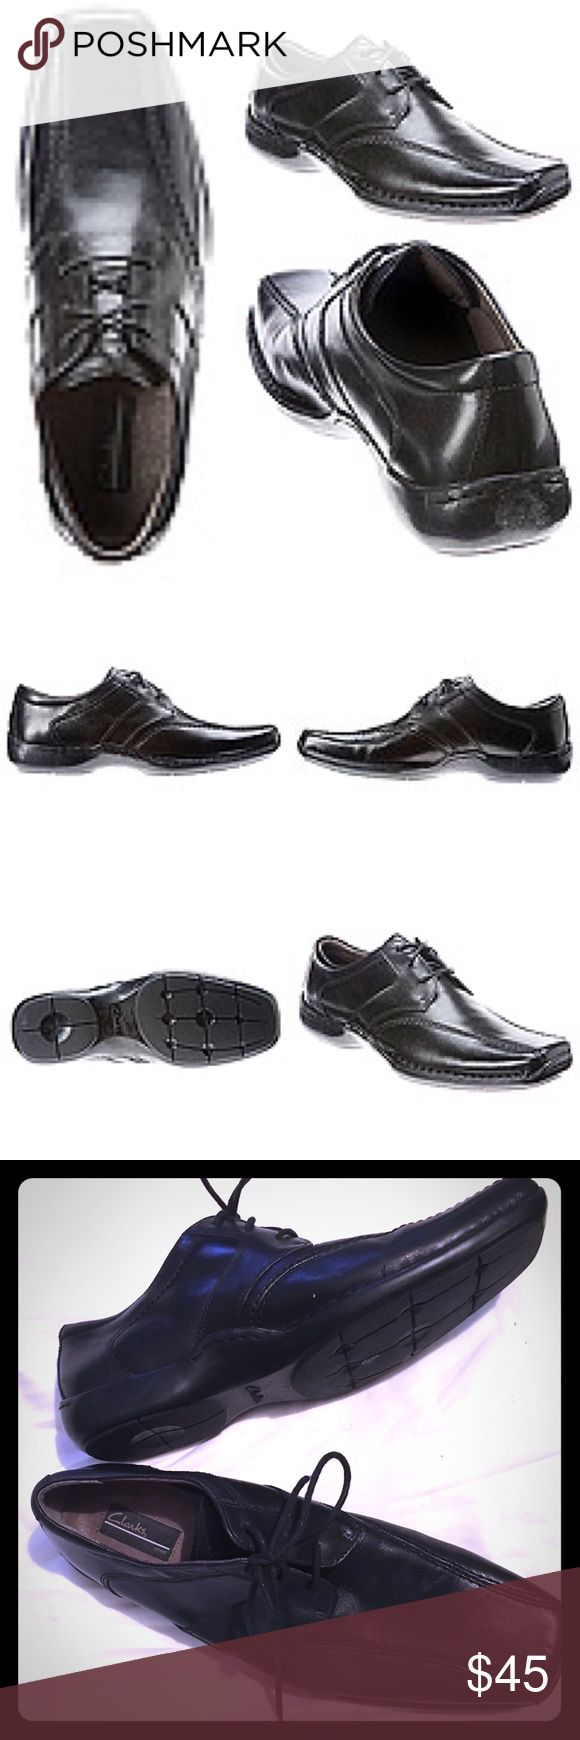 Men's Clarks Koval leather oxfords Men's Clarks Koval leather oxford shoe designed to take on the Monday through Friday grind from the Clarks® Collection is a men's lace up shoe crafted of rich black leather and features an OrthoLite® footbed for superior comfort. It's also outfitted with a discreet gore panels, making it easier to take on and off. Pair these ultra-wearable shoes with slacks or dark-wash denim, especially when you know it's going to be a long day. Great preloved condition…